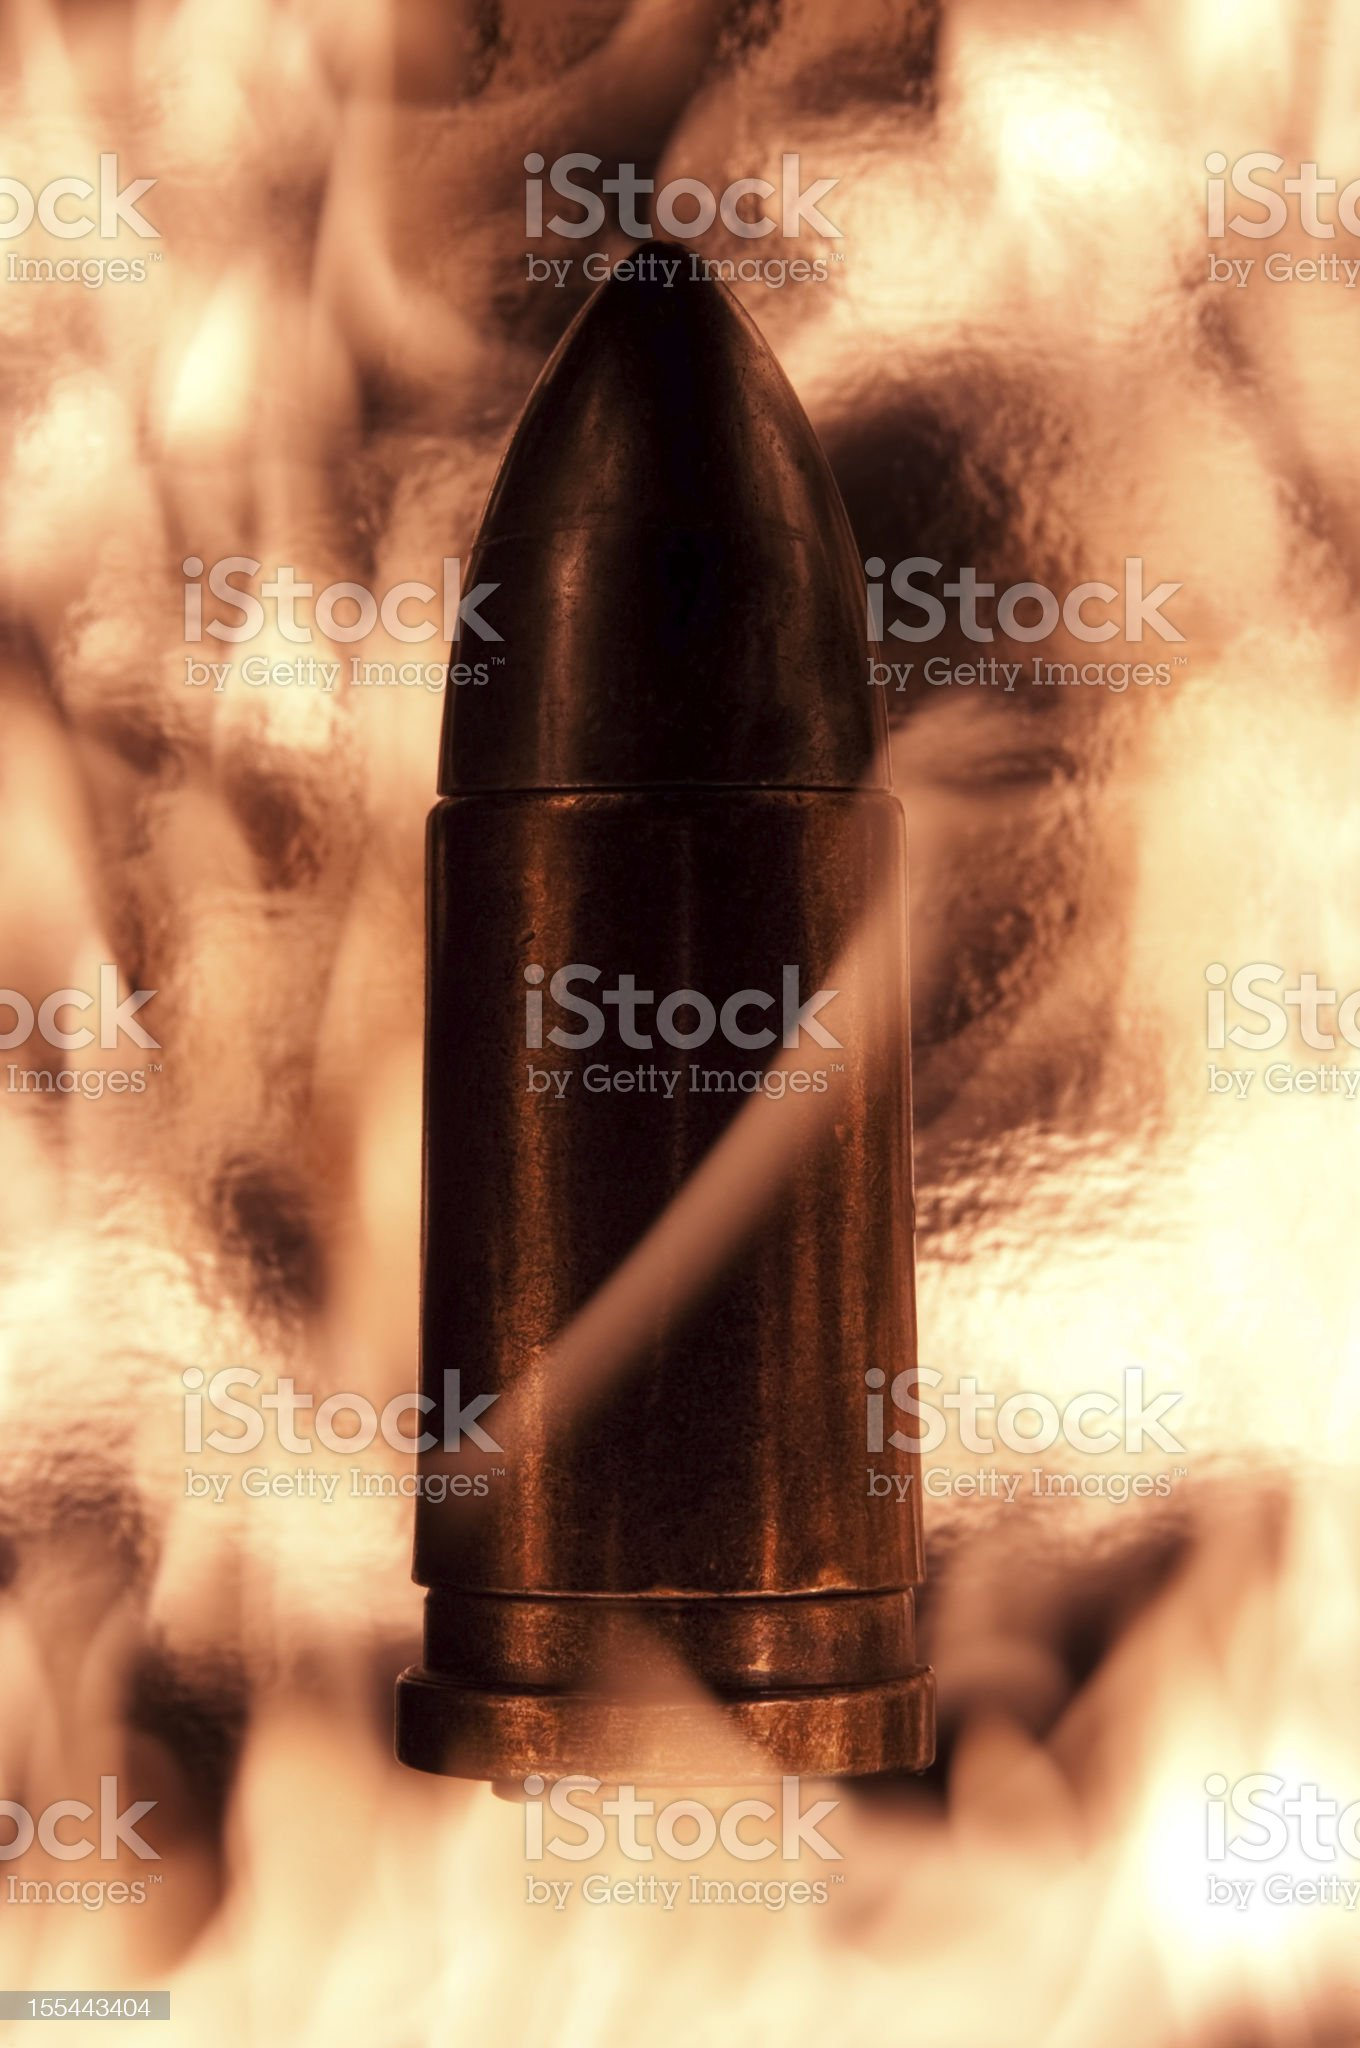 Silhouetted 9mm Bullet royalty-free stock photo